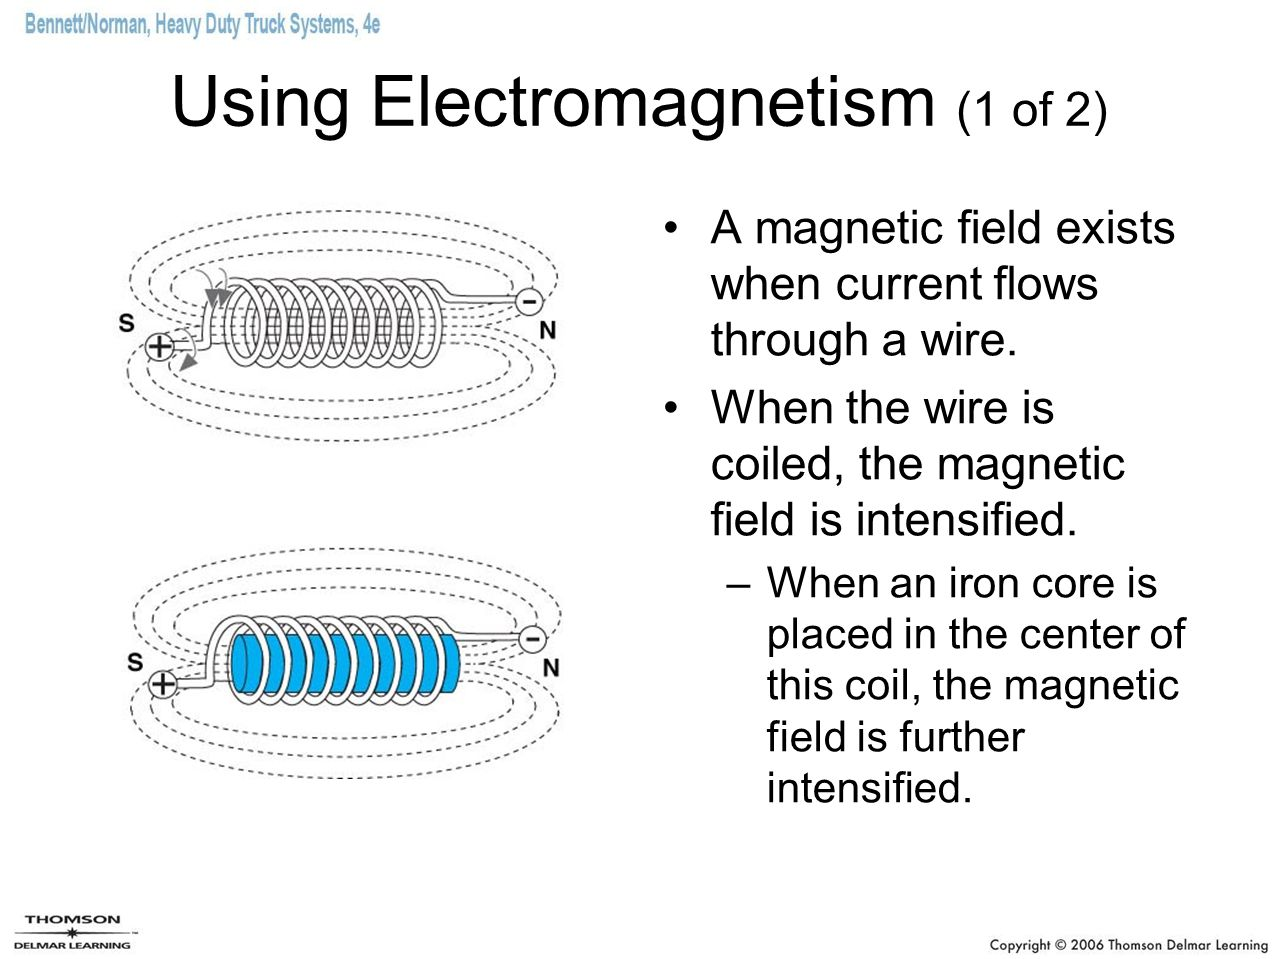 Using Electromagnetism (1 of 2)